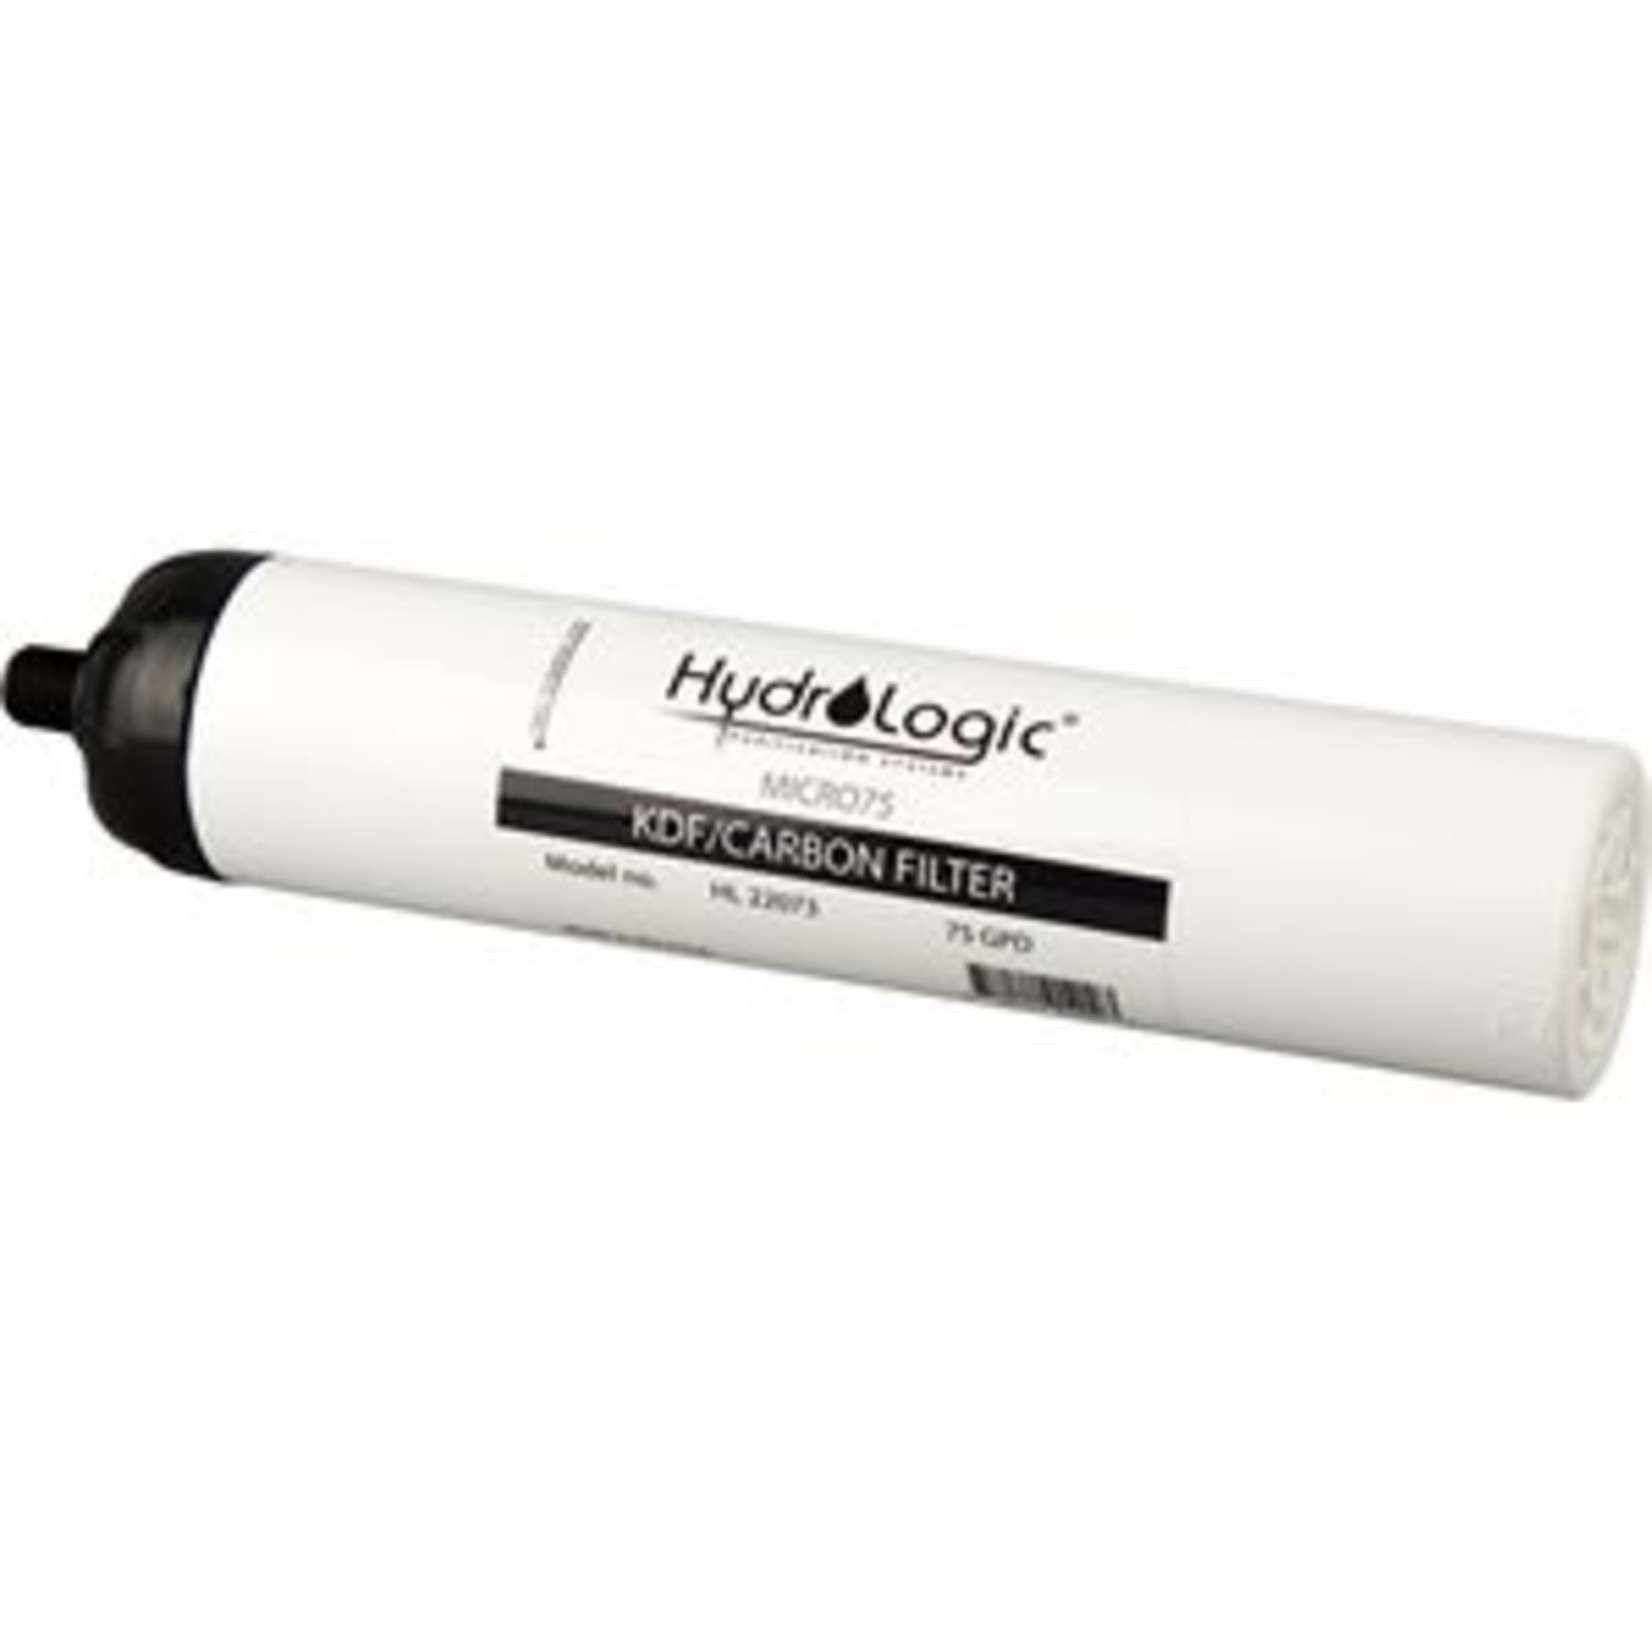 Hydrologic HYDROLOGIC MICRO75 KDF / GRANULATED CATALYTIC CARBON FILTER